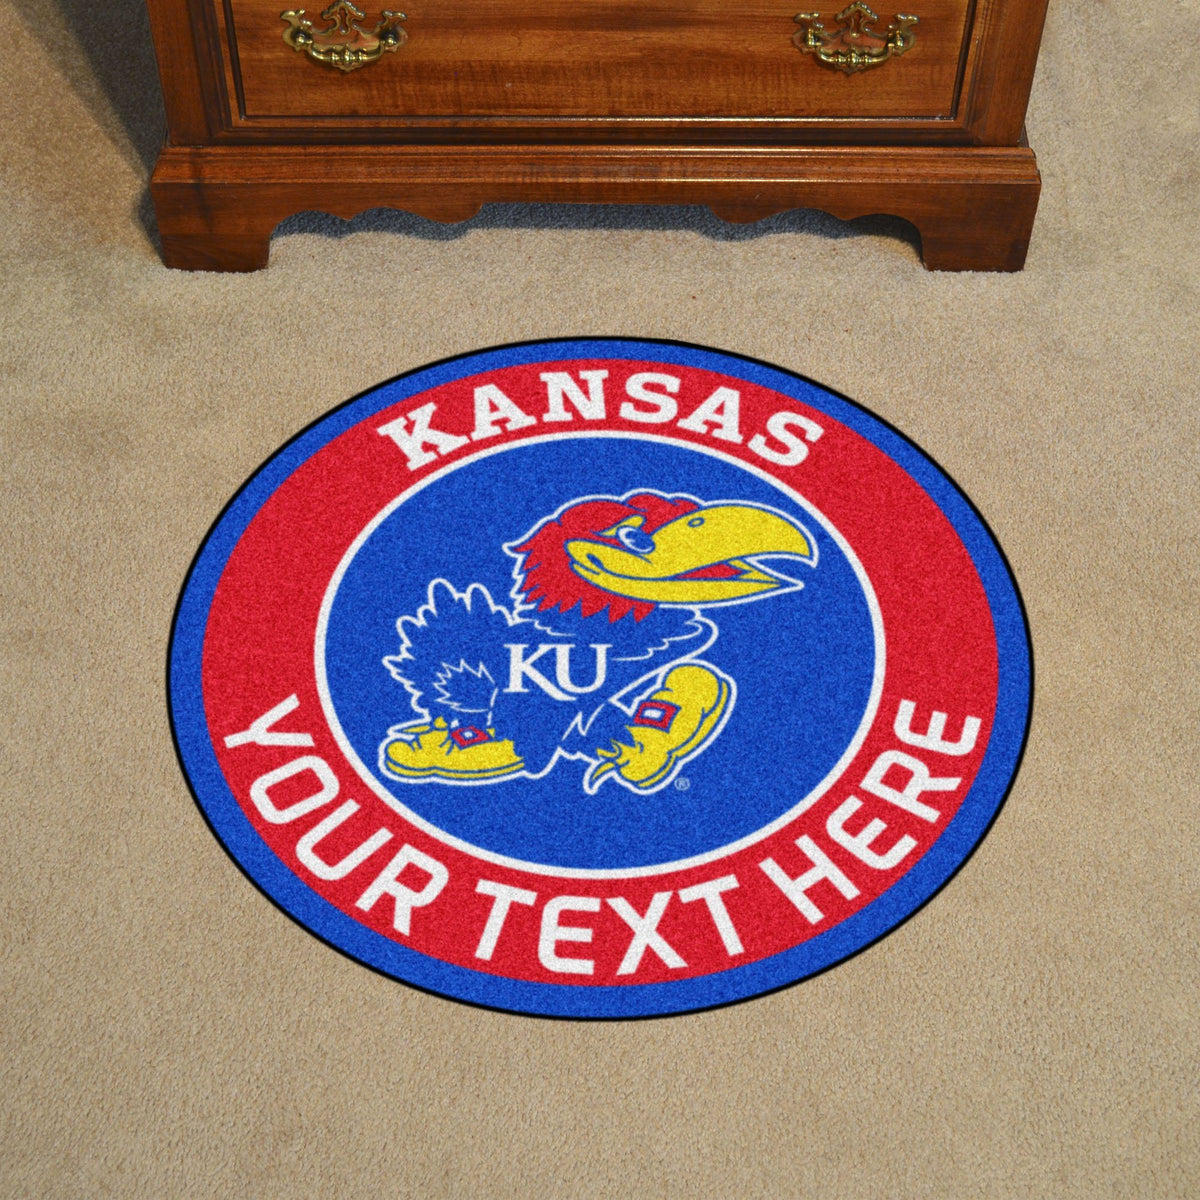 Collegiate Personalized Roundel Mat Personalized Roundel Mat Fan Mats University of Kansas